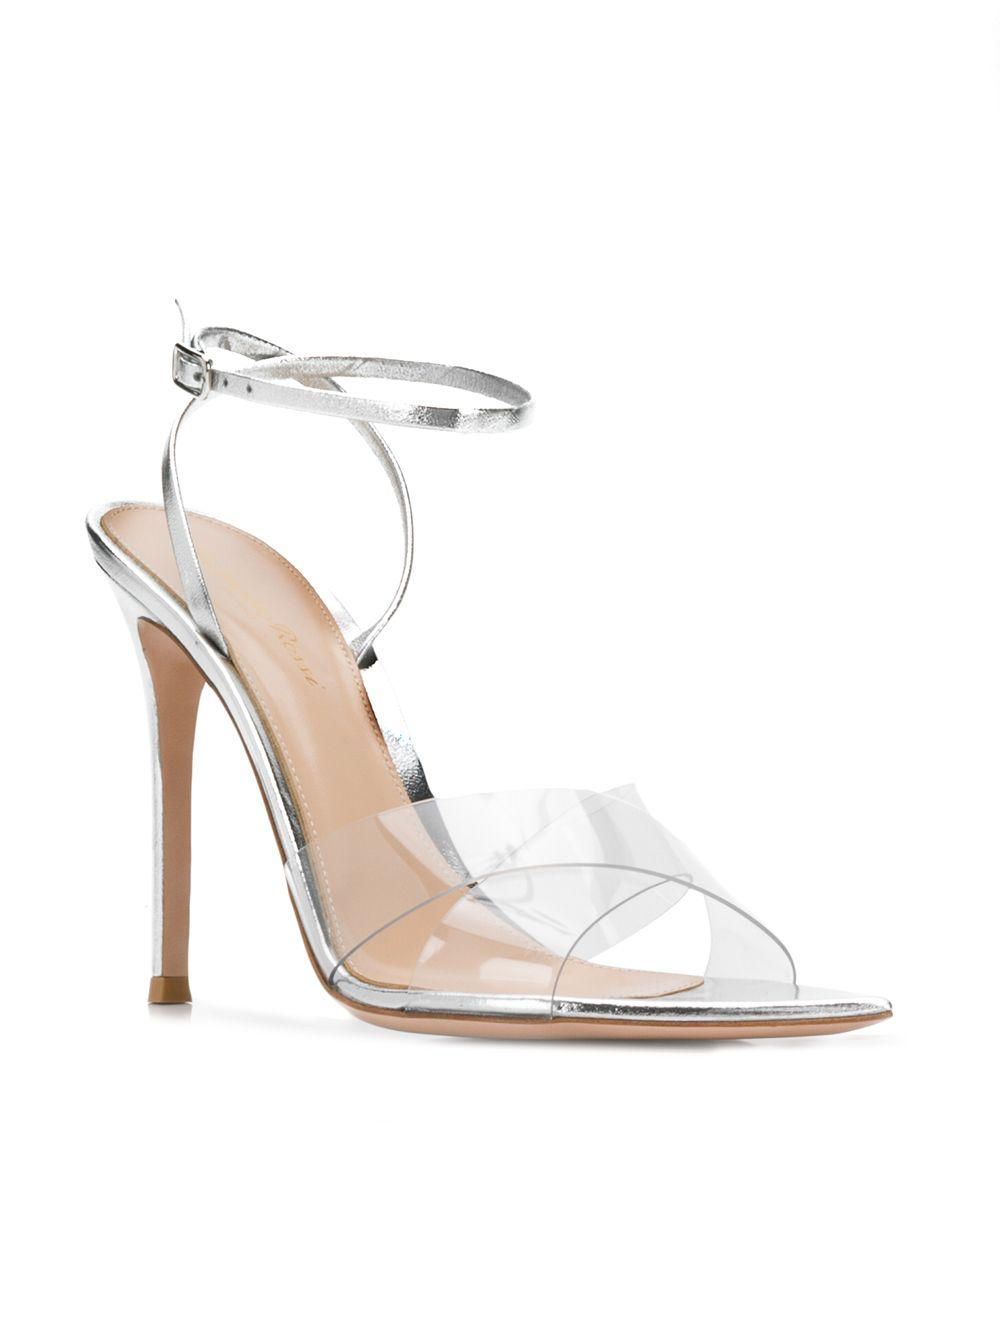 8608af396bf Lyst - Gianvito Rossi Ankle Strap Sandals in Metallic